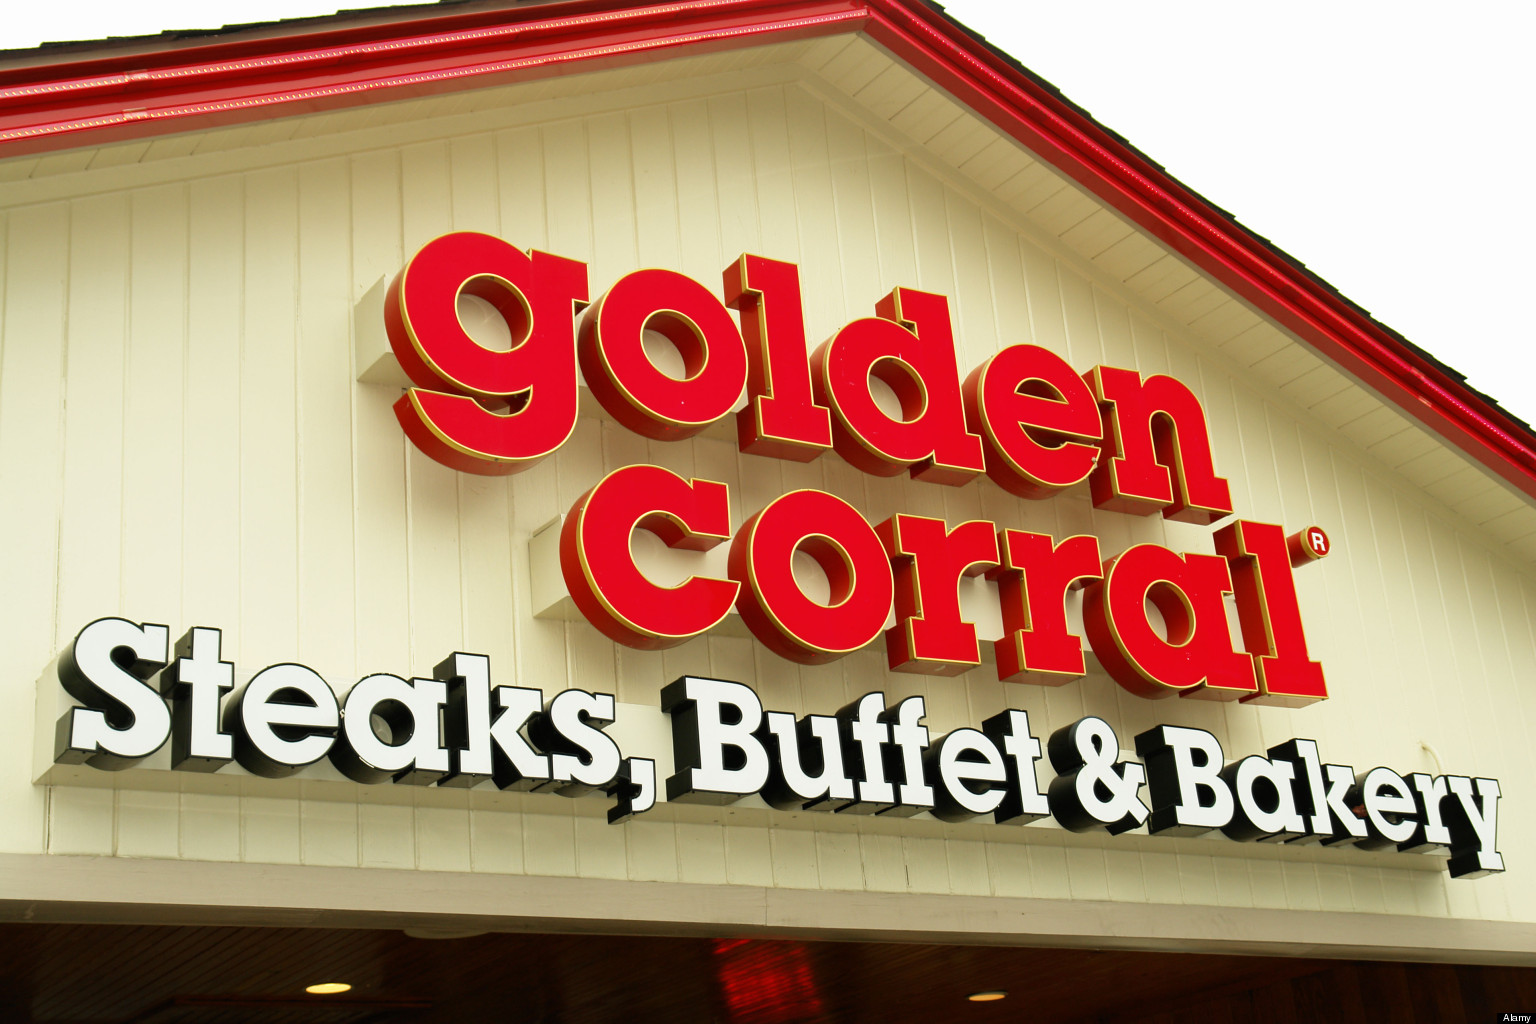 David Letterman S Top Ten Golden Corral Excuses